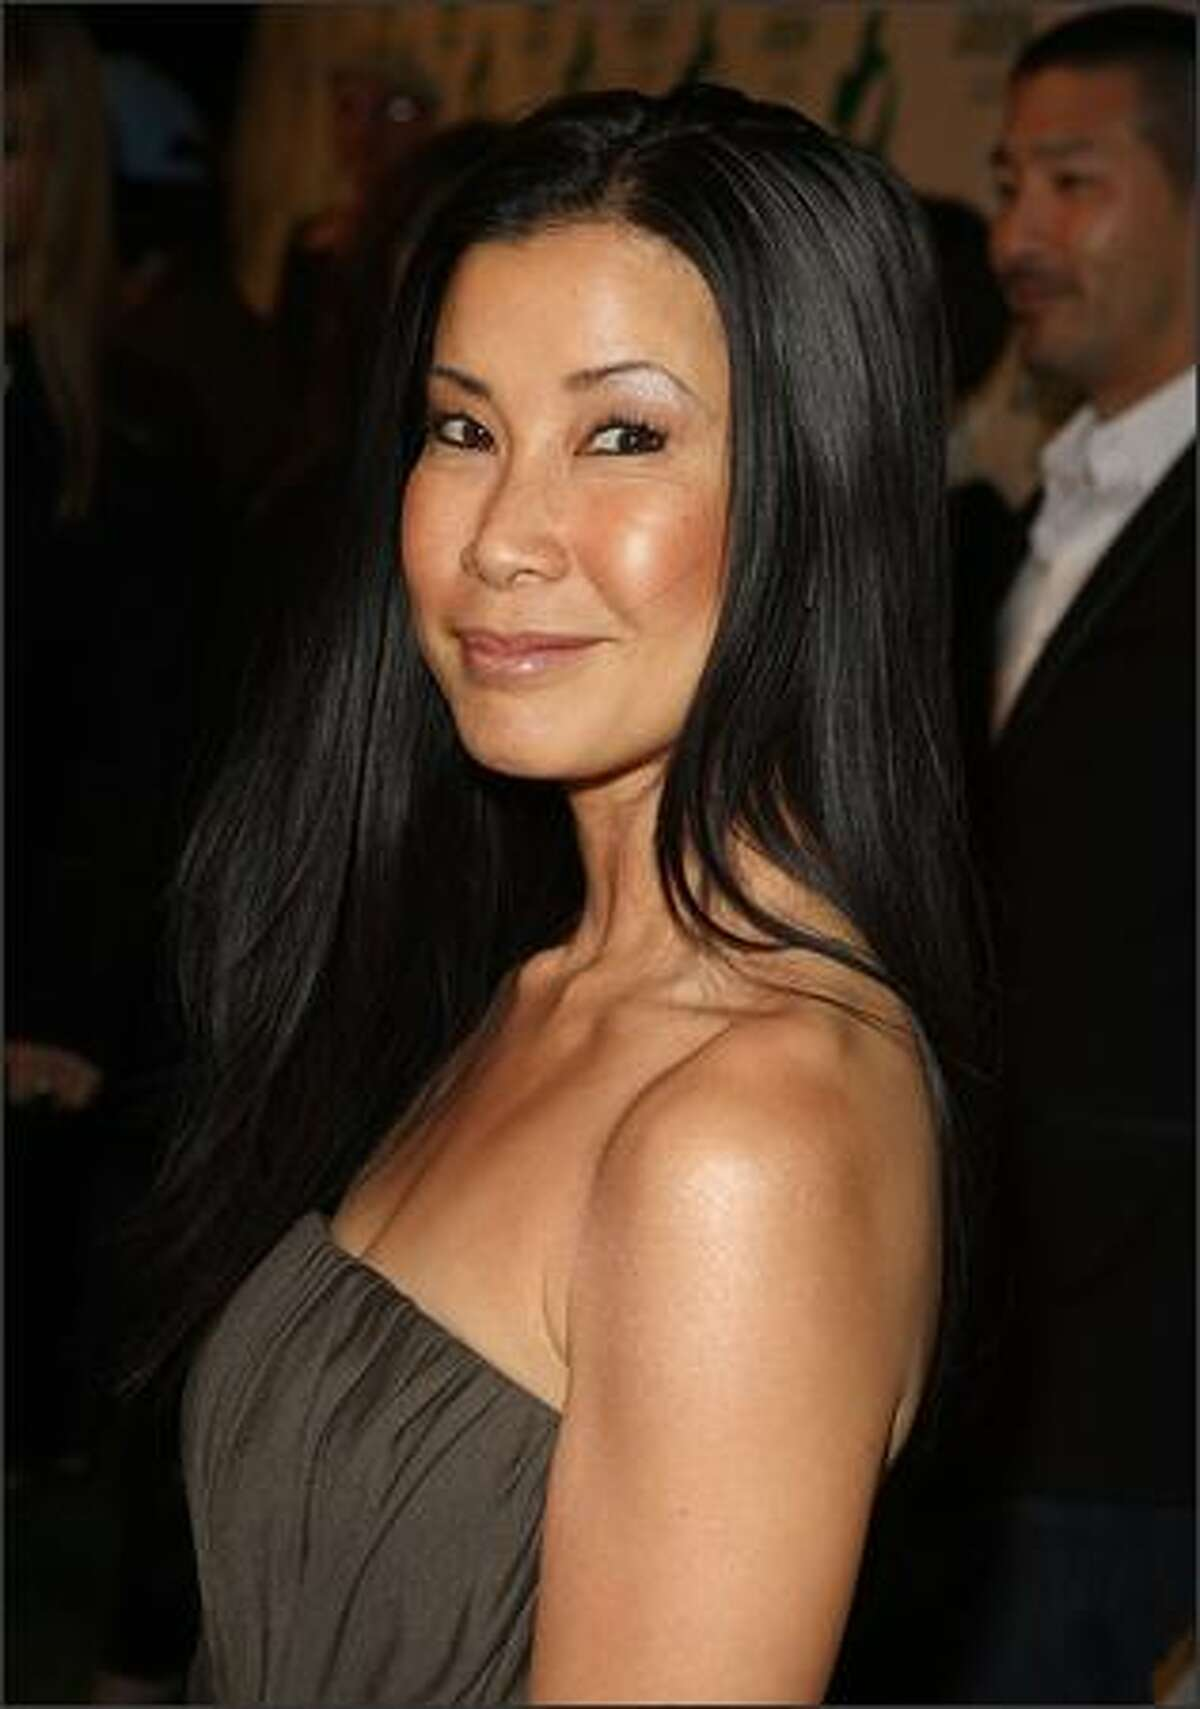 Correspondent Lisa Ling arrives at Global Green USA's 6th Annual Pre-Oscar Party held at Avalon Hollwood in Hollywood, California.